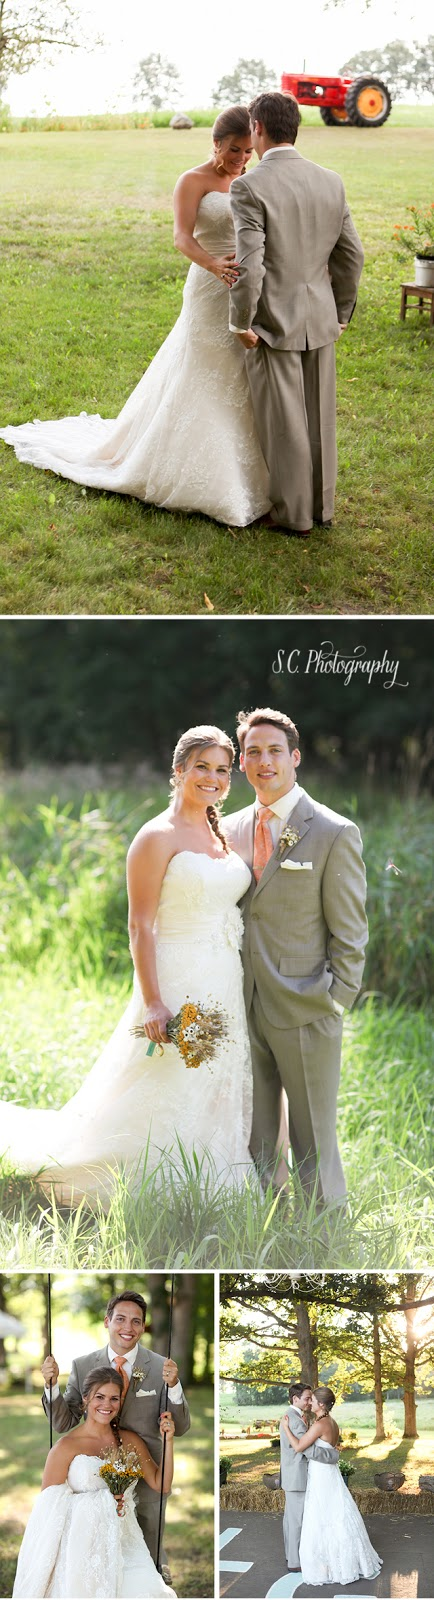 Bret Green, Amanda Loveland, Wedding, Bride and Groom Portraits, swing, S.C. Photography